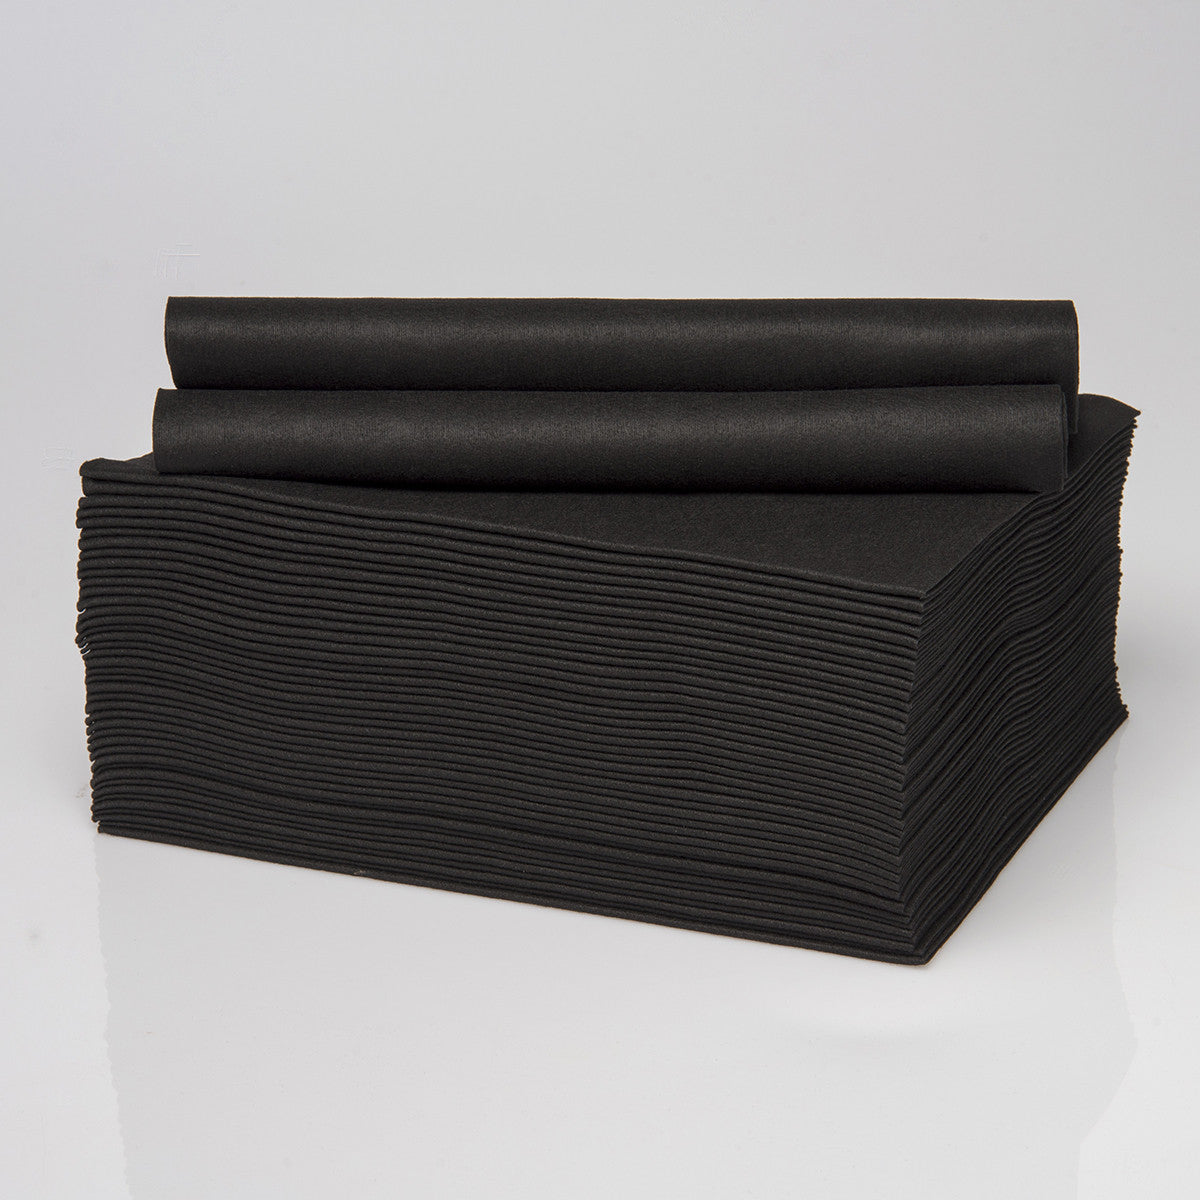 Envirodry Black Towels for the Gym, Sports & Leisure Industry - Pack of 50 towels